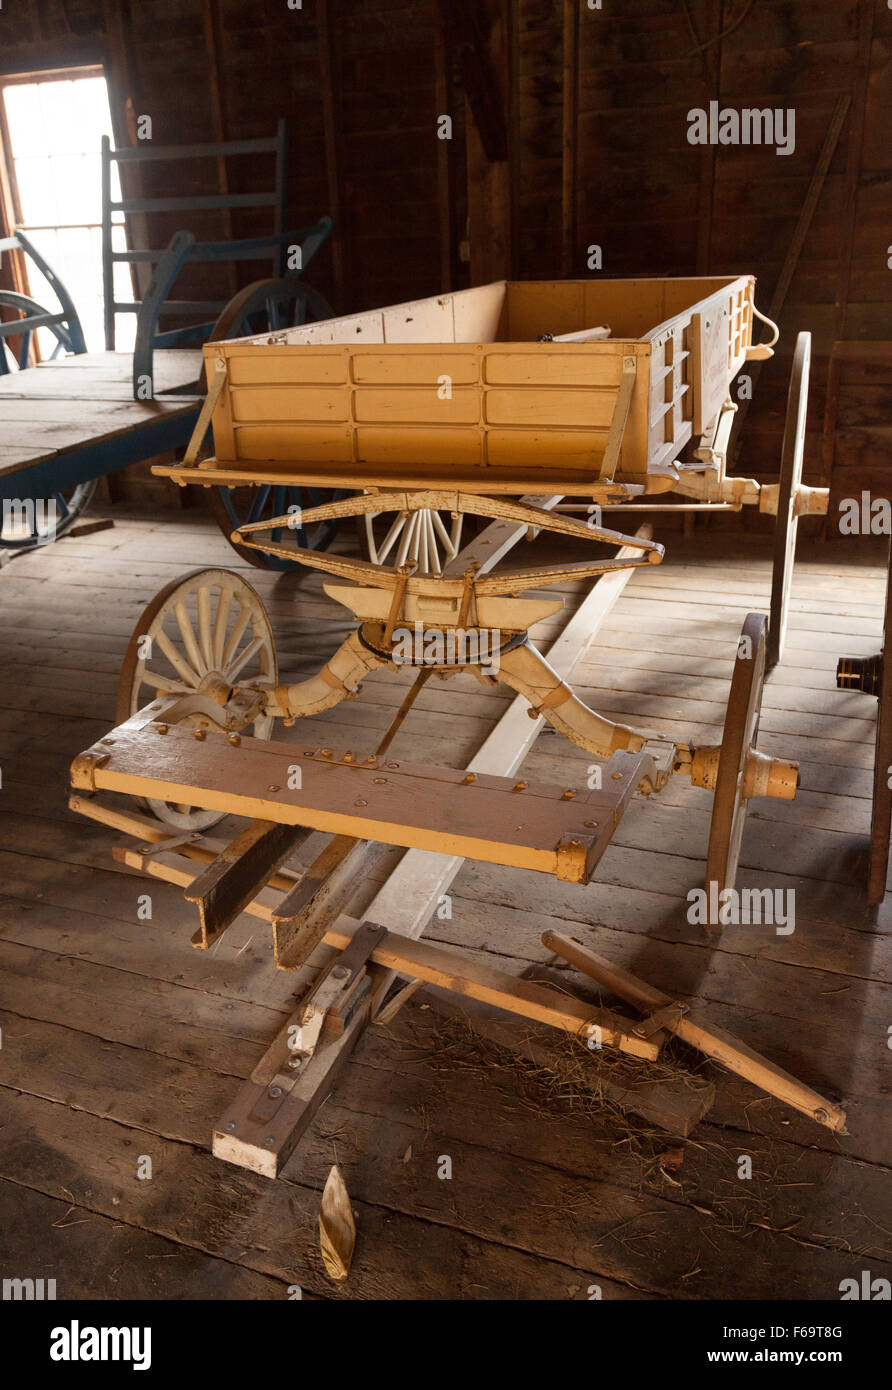 An express wagon from the 1800s used on a farm, Billings Farm, Woodstock, Vermont USA - Stock Image